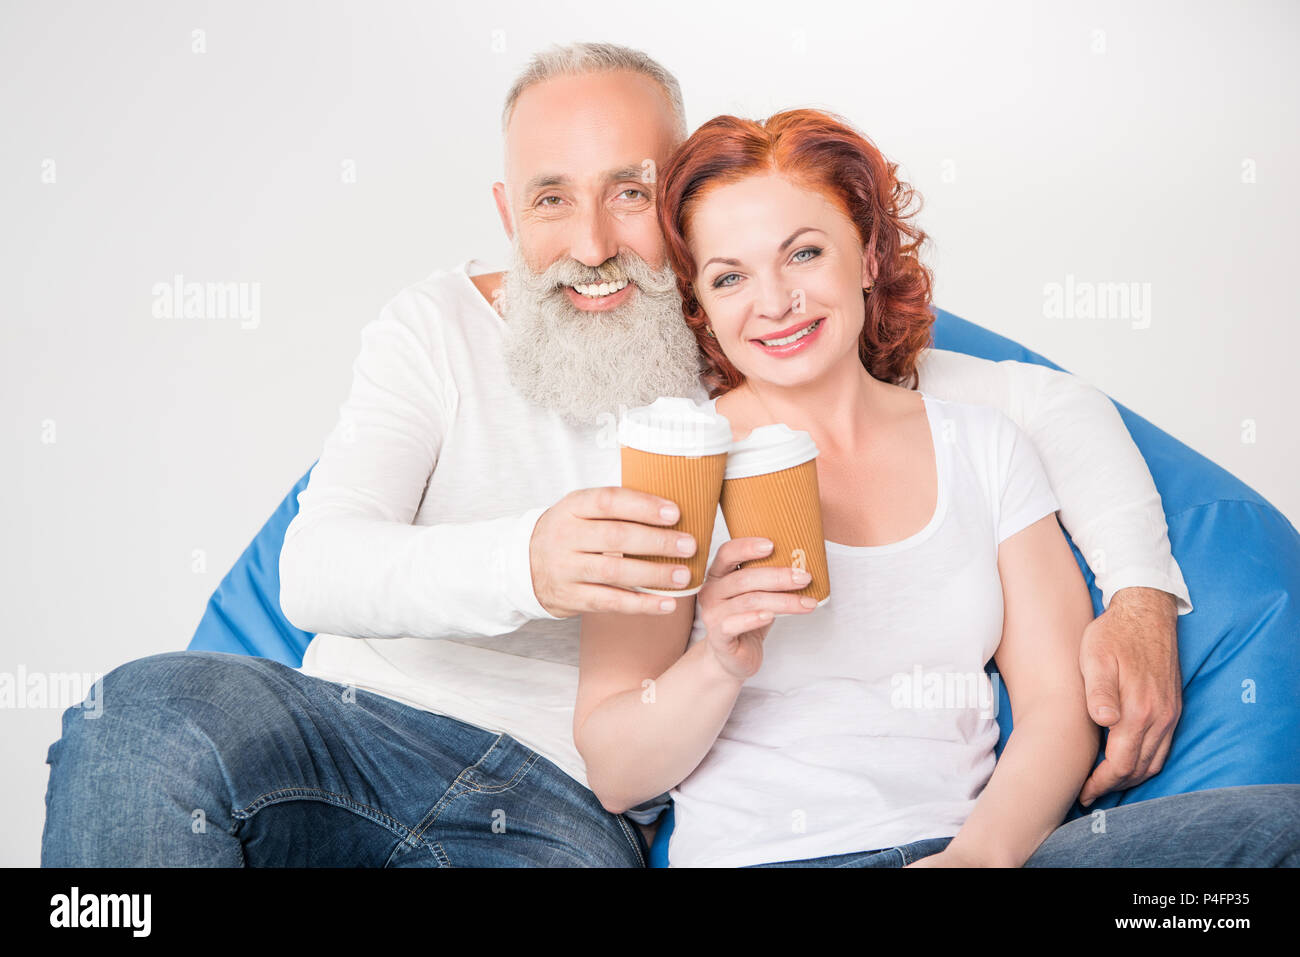 smiling mature couple drinking coffee from disposable cups while sitting in bean bag chair, isolated on white - Stock Image